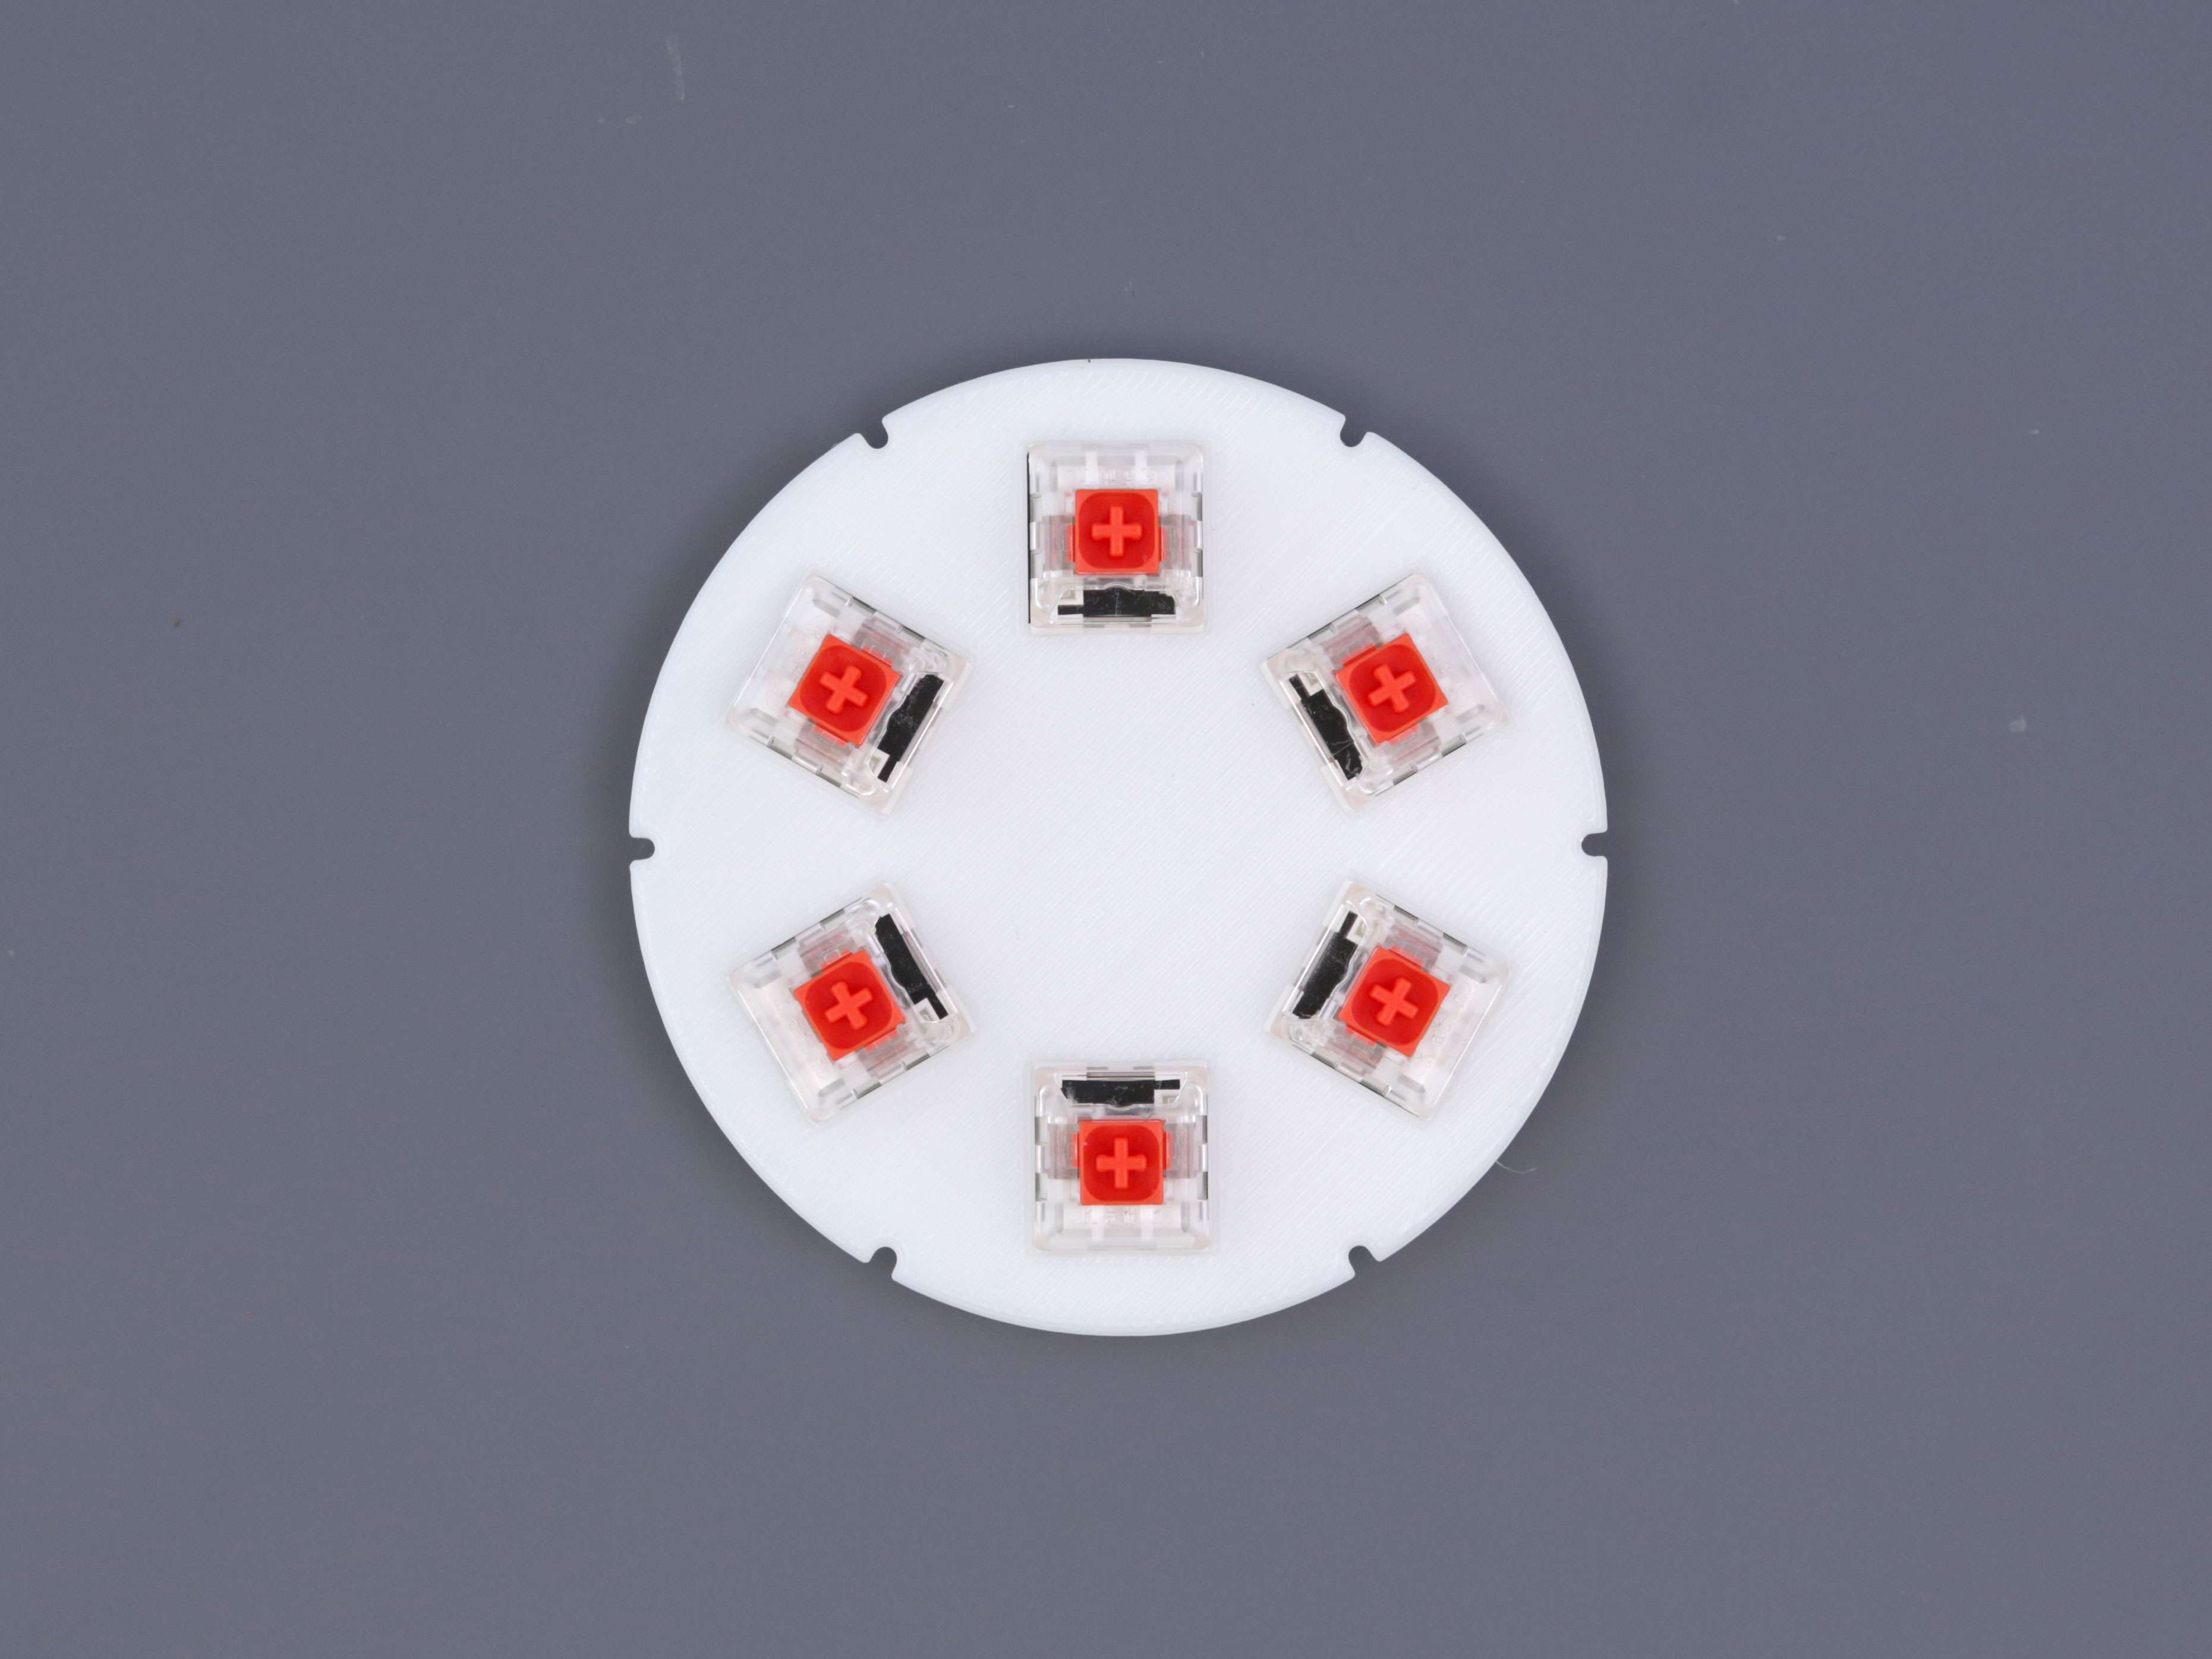 3d_printing_switches-plate-installed-top.jpg